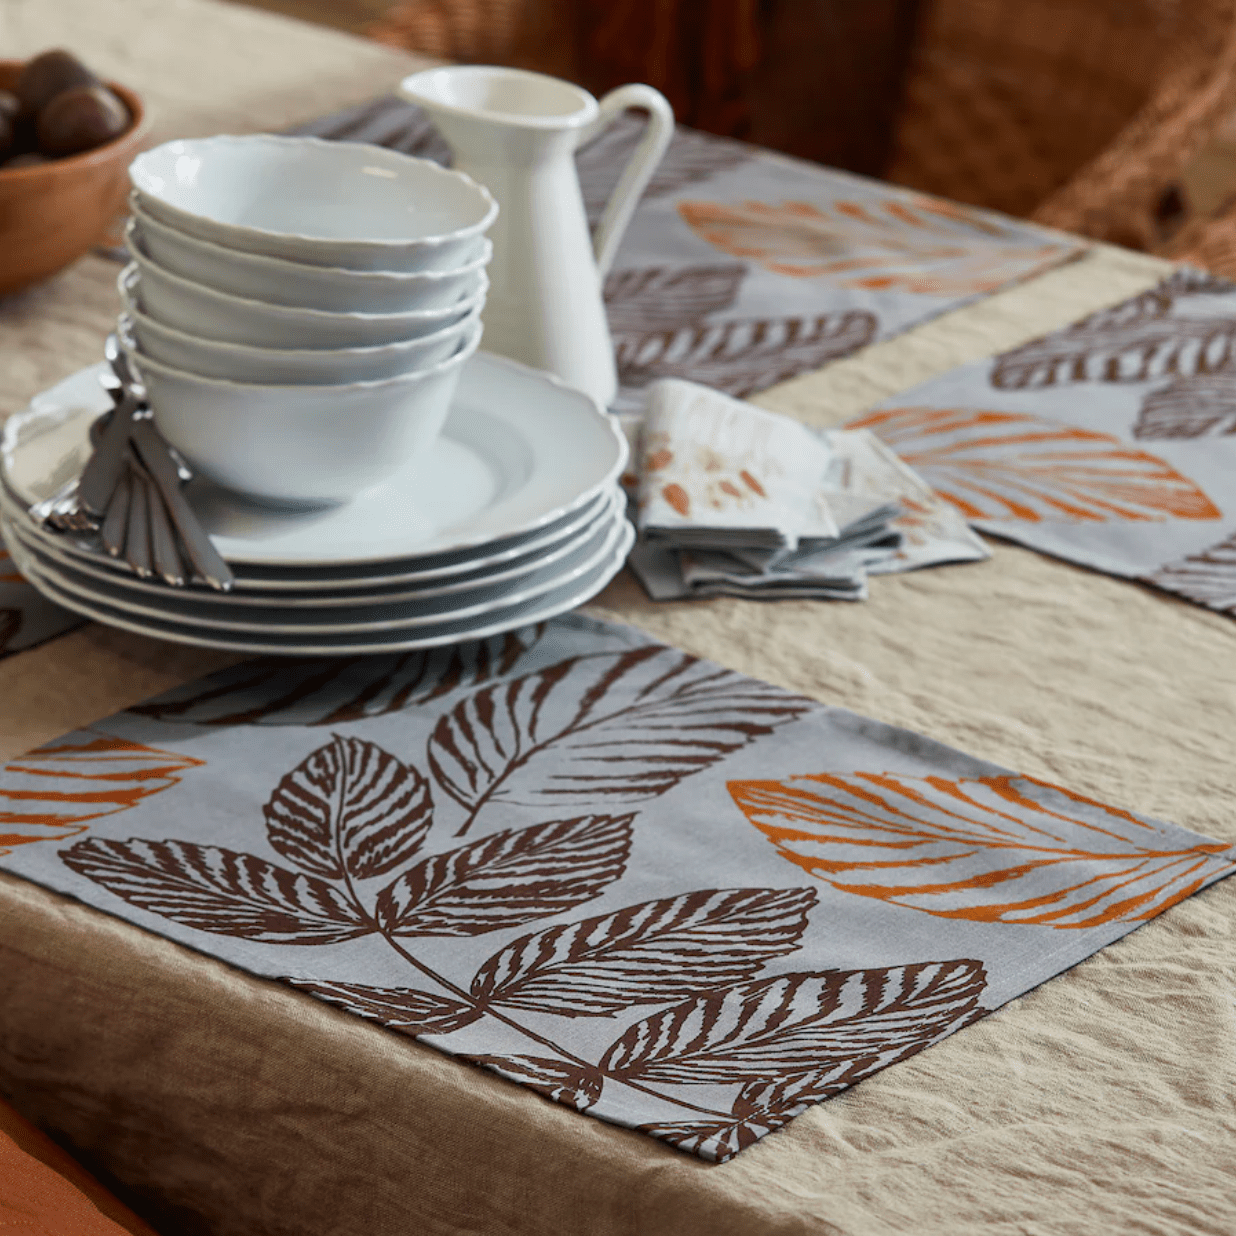 Leaf-printed placemats on a table